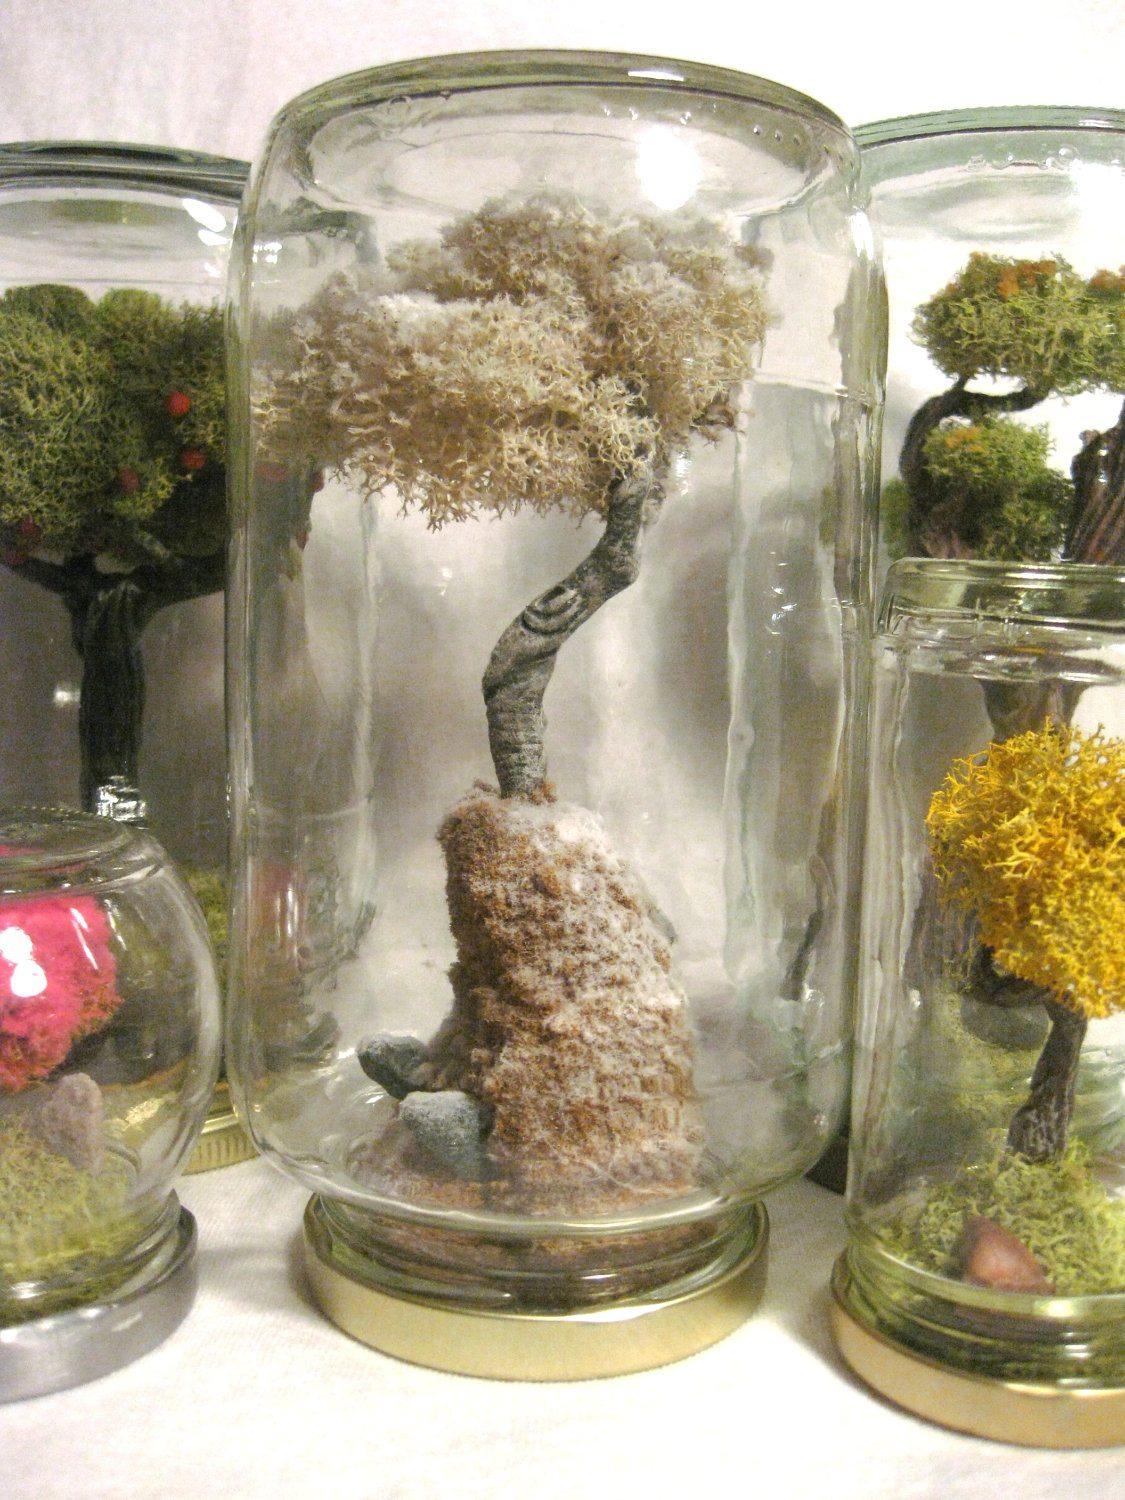 First Snow  Terrarium In A Jar Terrariums Appeal To Me, Whether The  Fillings Are Real Or Fake Flipping The Jar Upside Down Makes Me Imagine  Totally New